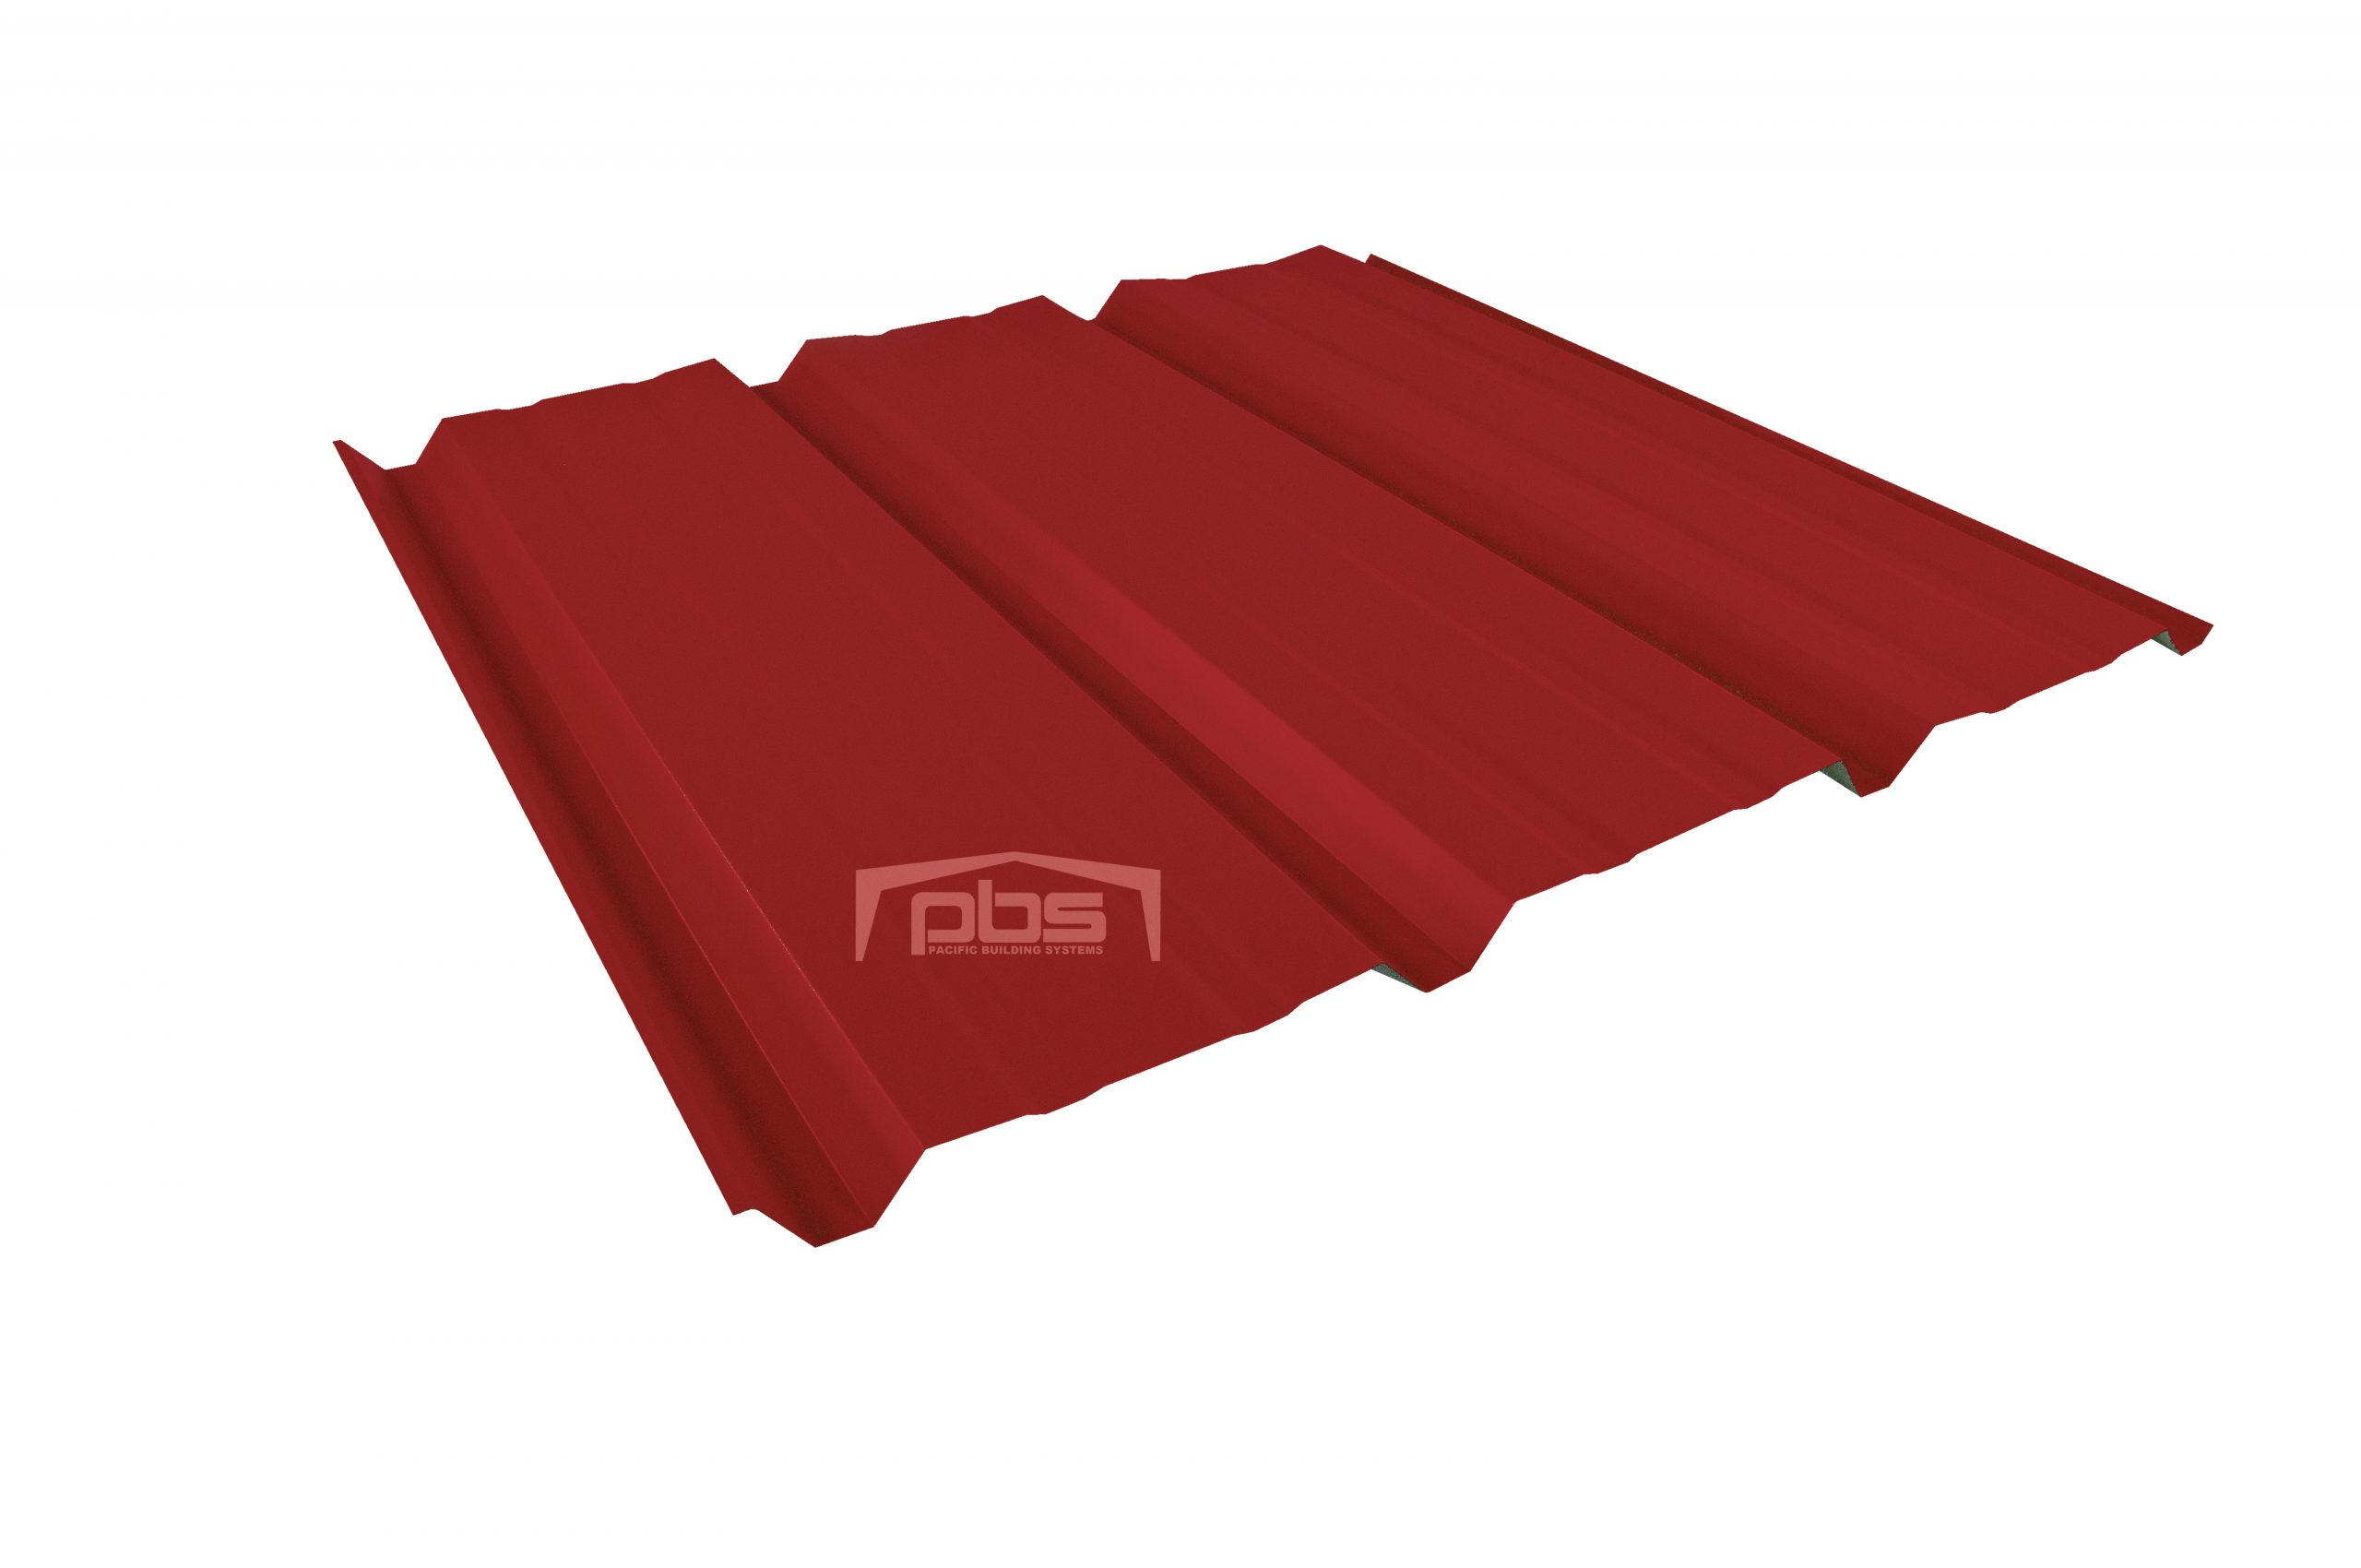 fastener panel that can be used for both roof and wall applications